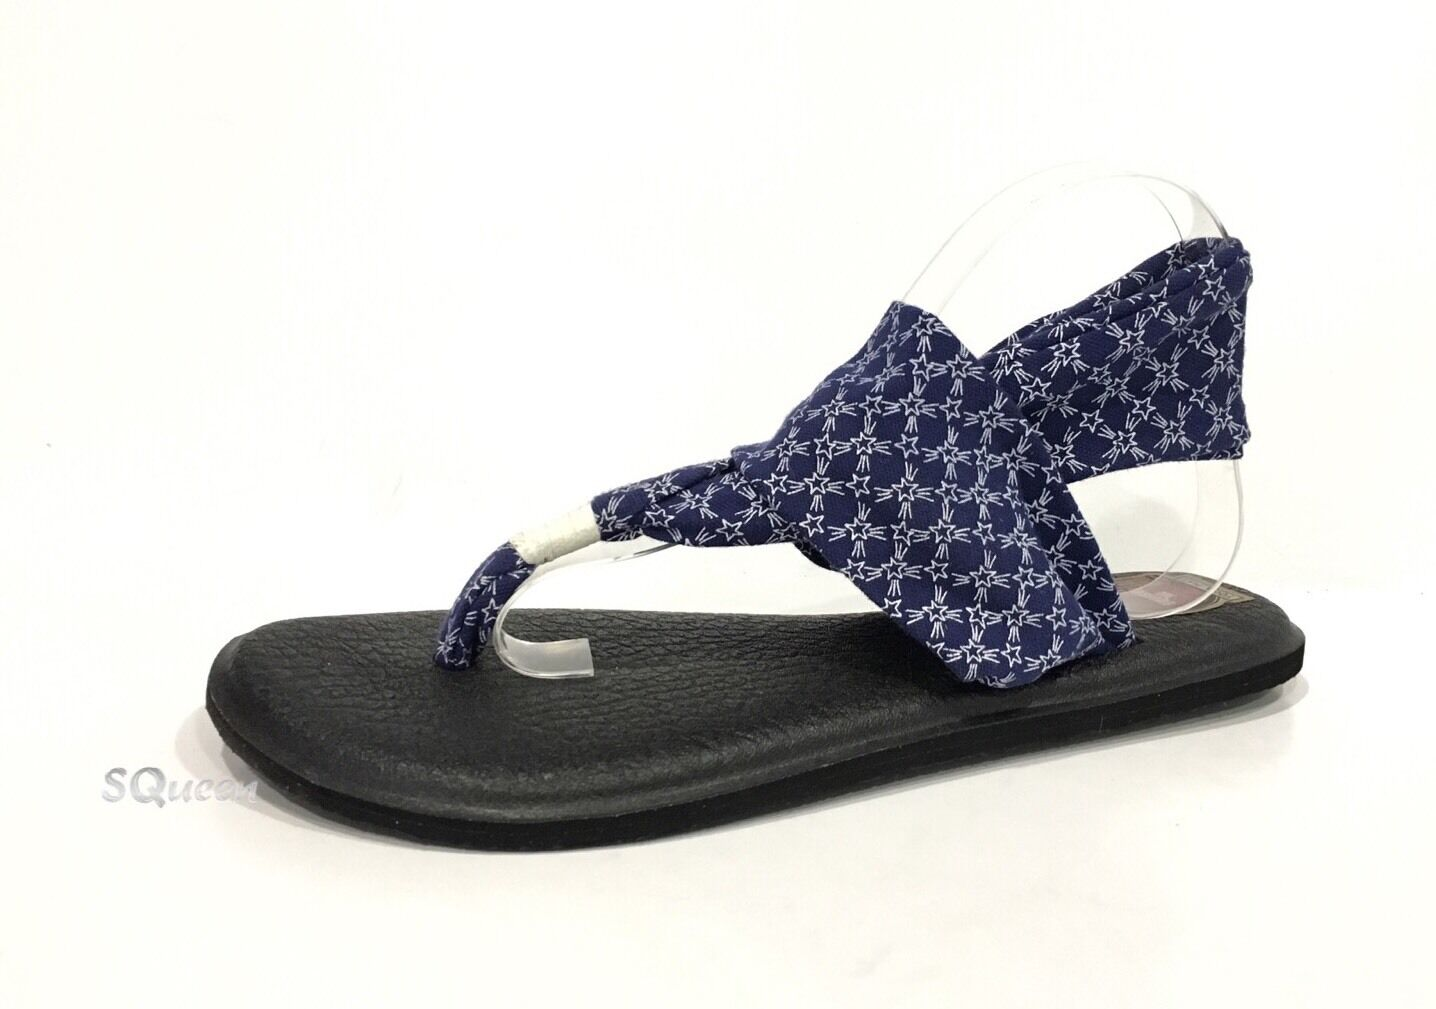 0727e26db97a Sanuk Women s Yoga Sling Patriot Sandals Blue Stars 11 US   42 EUR ...